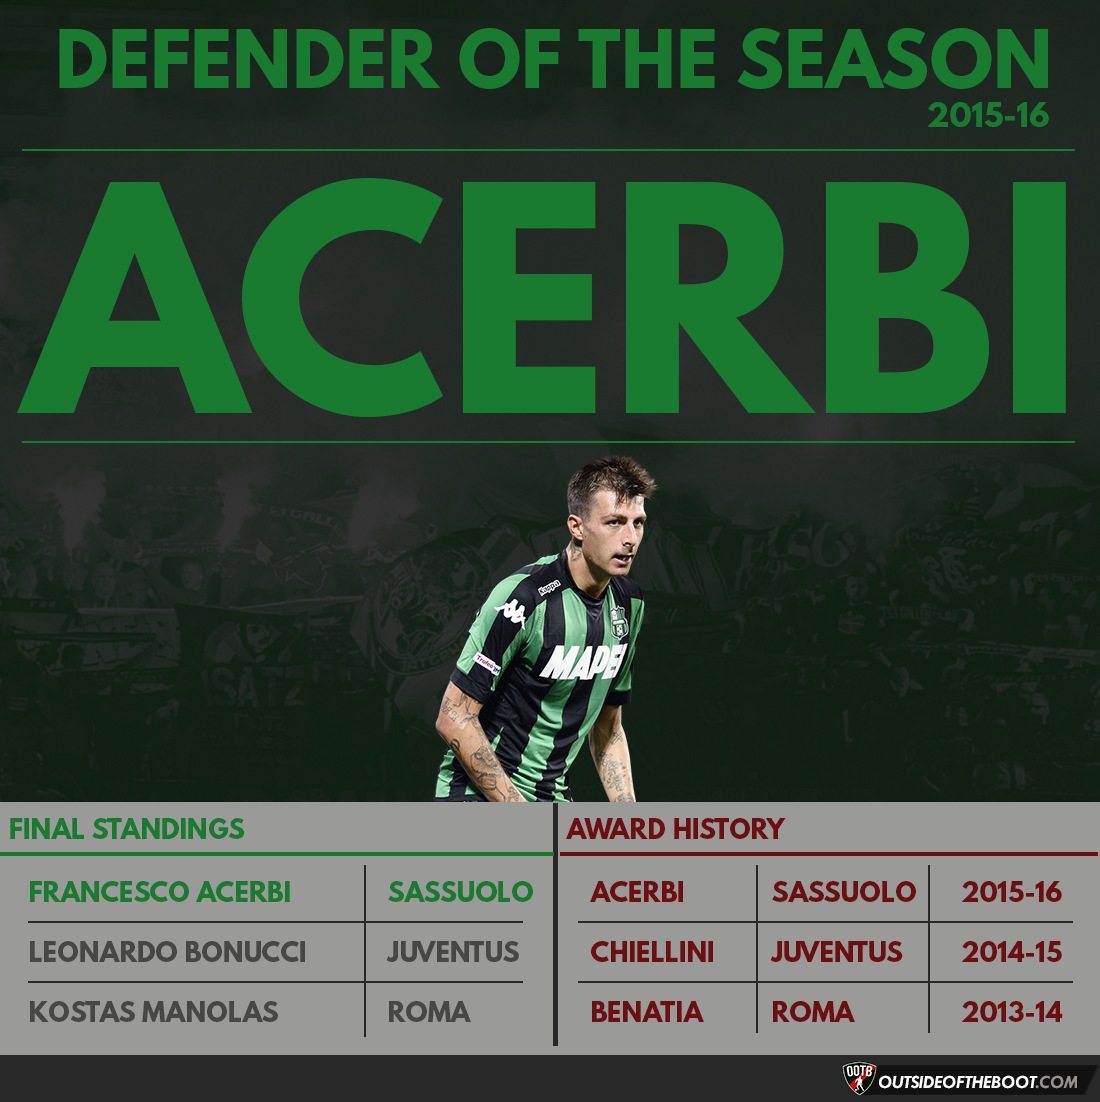 Serie A Defender of the Season 2015-16